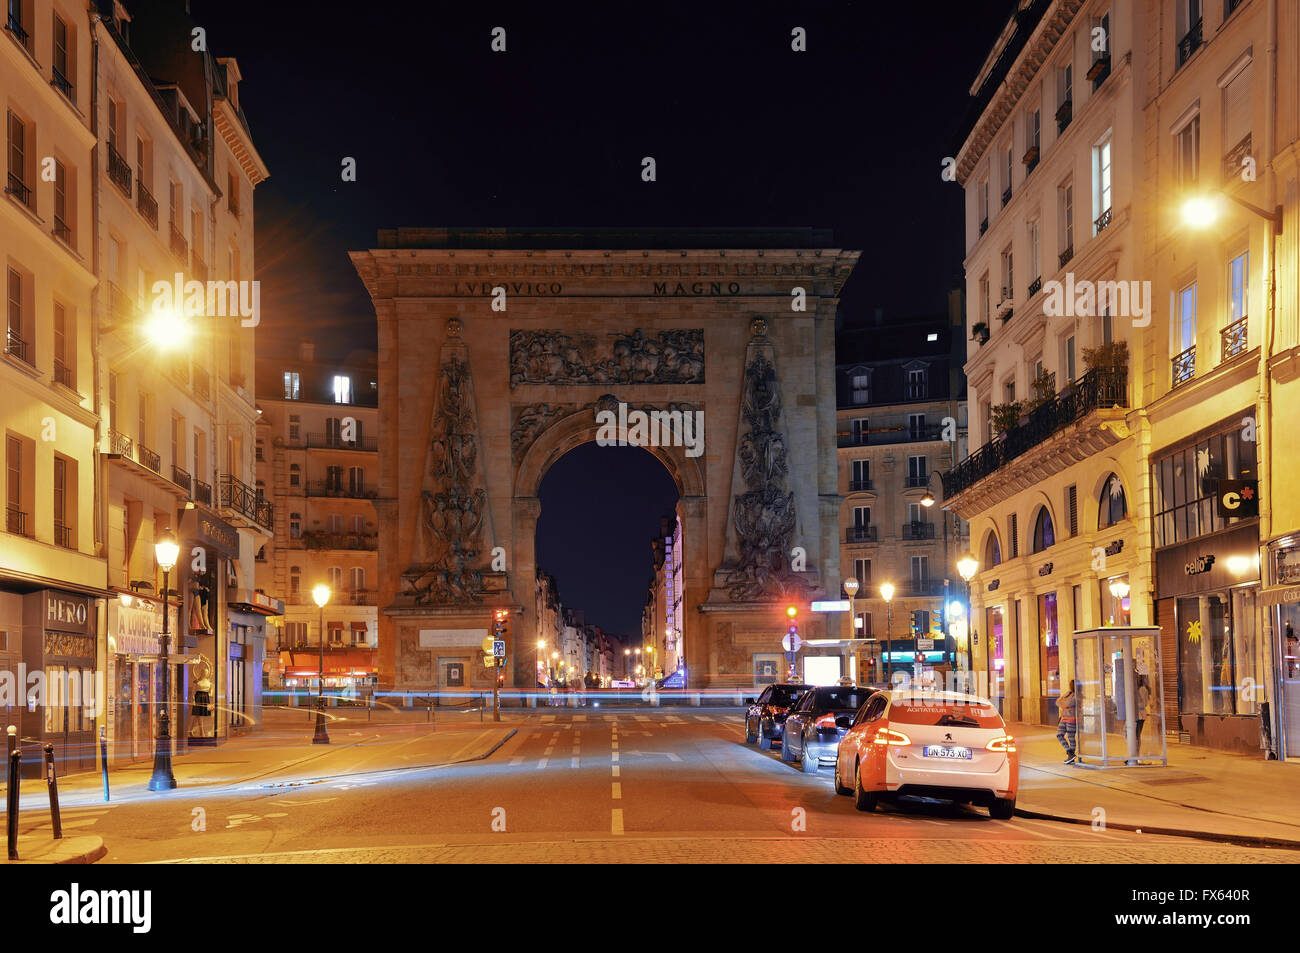 paris france may 13 street view at night on may 13 2015 in stock photo royalty free image. Black Bedroom Furniture Sets. Home Design Ideas